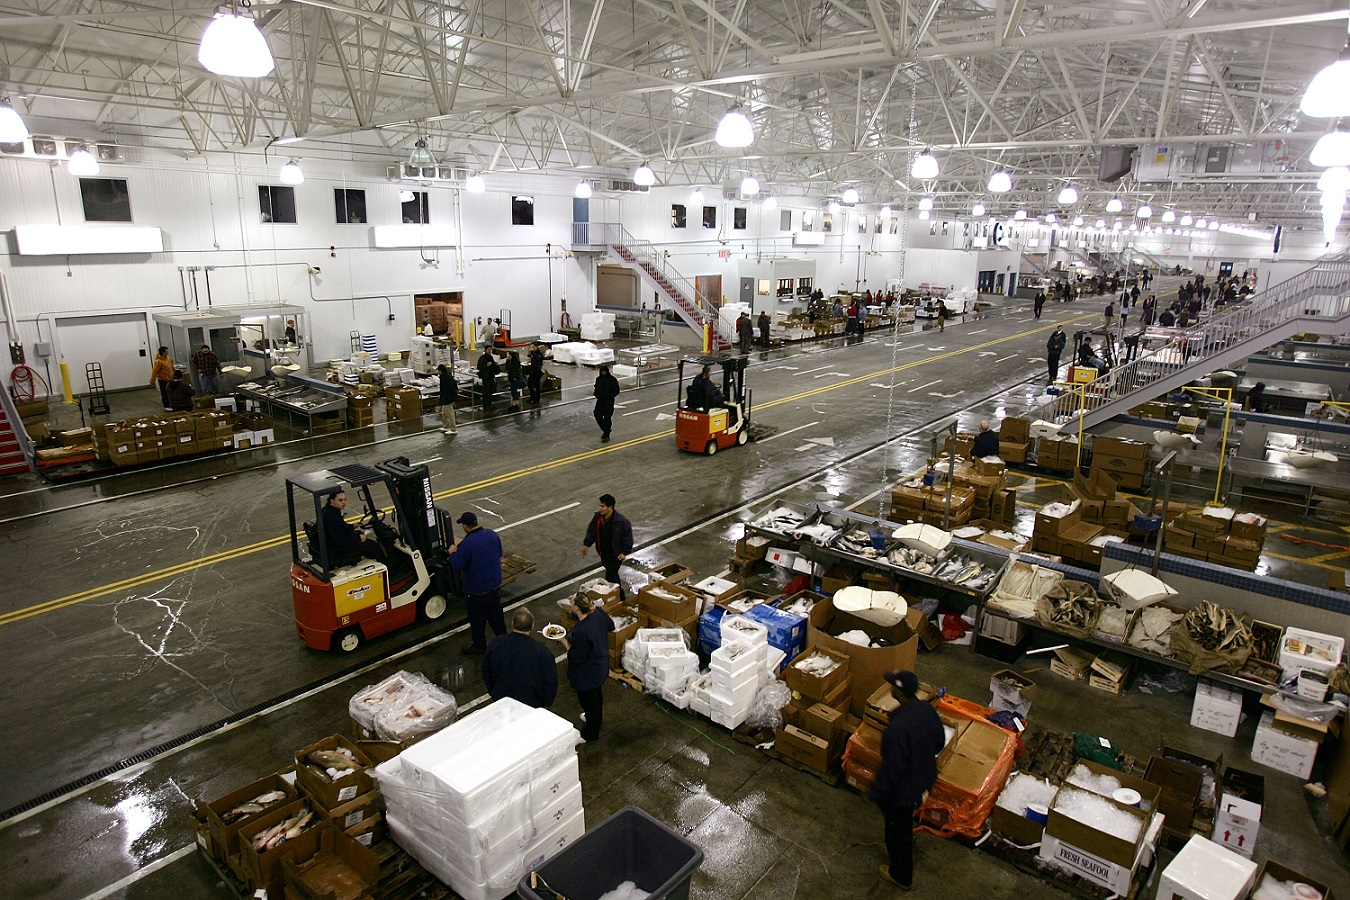 Workers sort fish at the New Fulton Fish Market, one of three cooperative markets at the Hunts Point Food Distribution Center in the Bronx. (Spencer Platt/Getty Images)